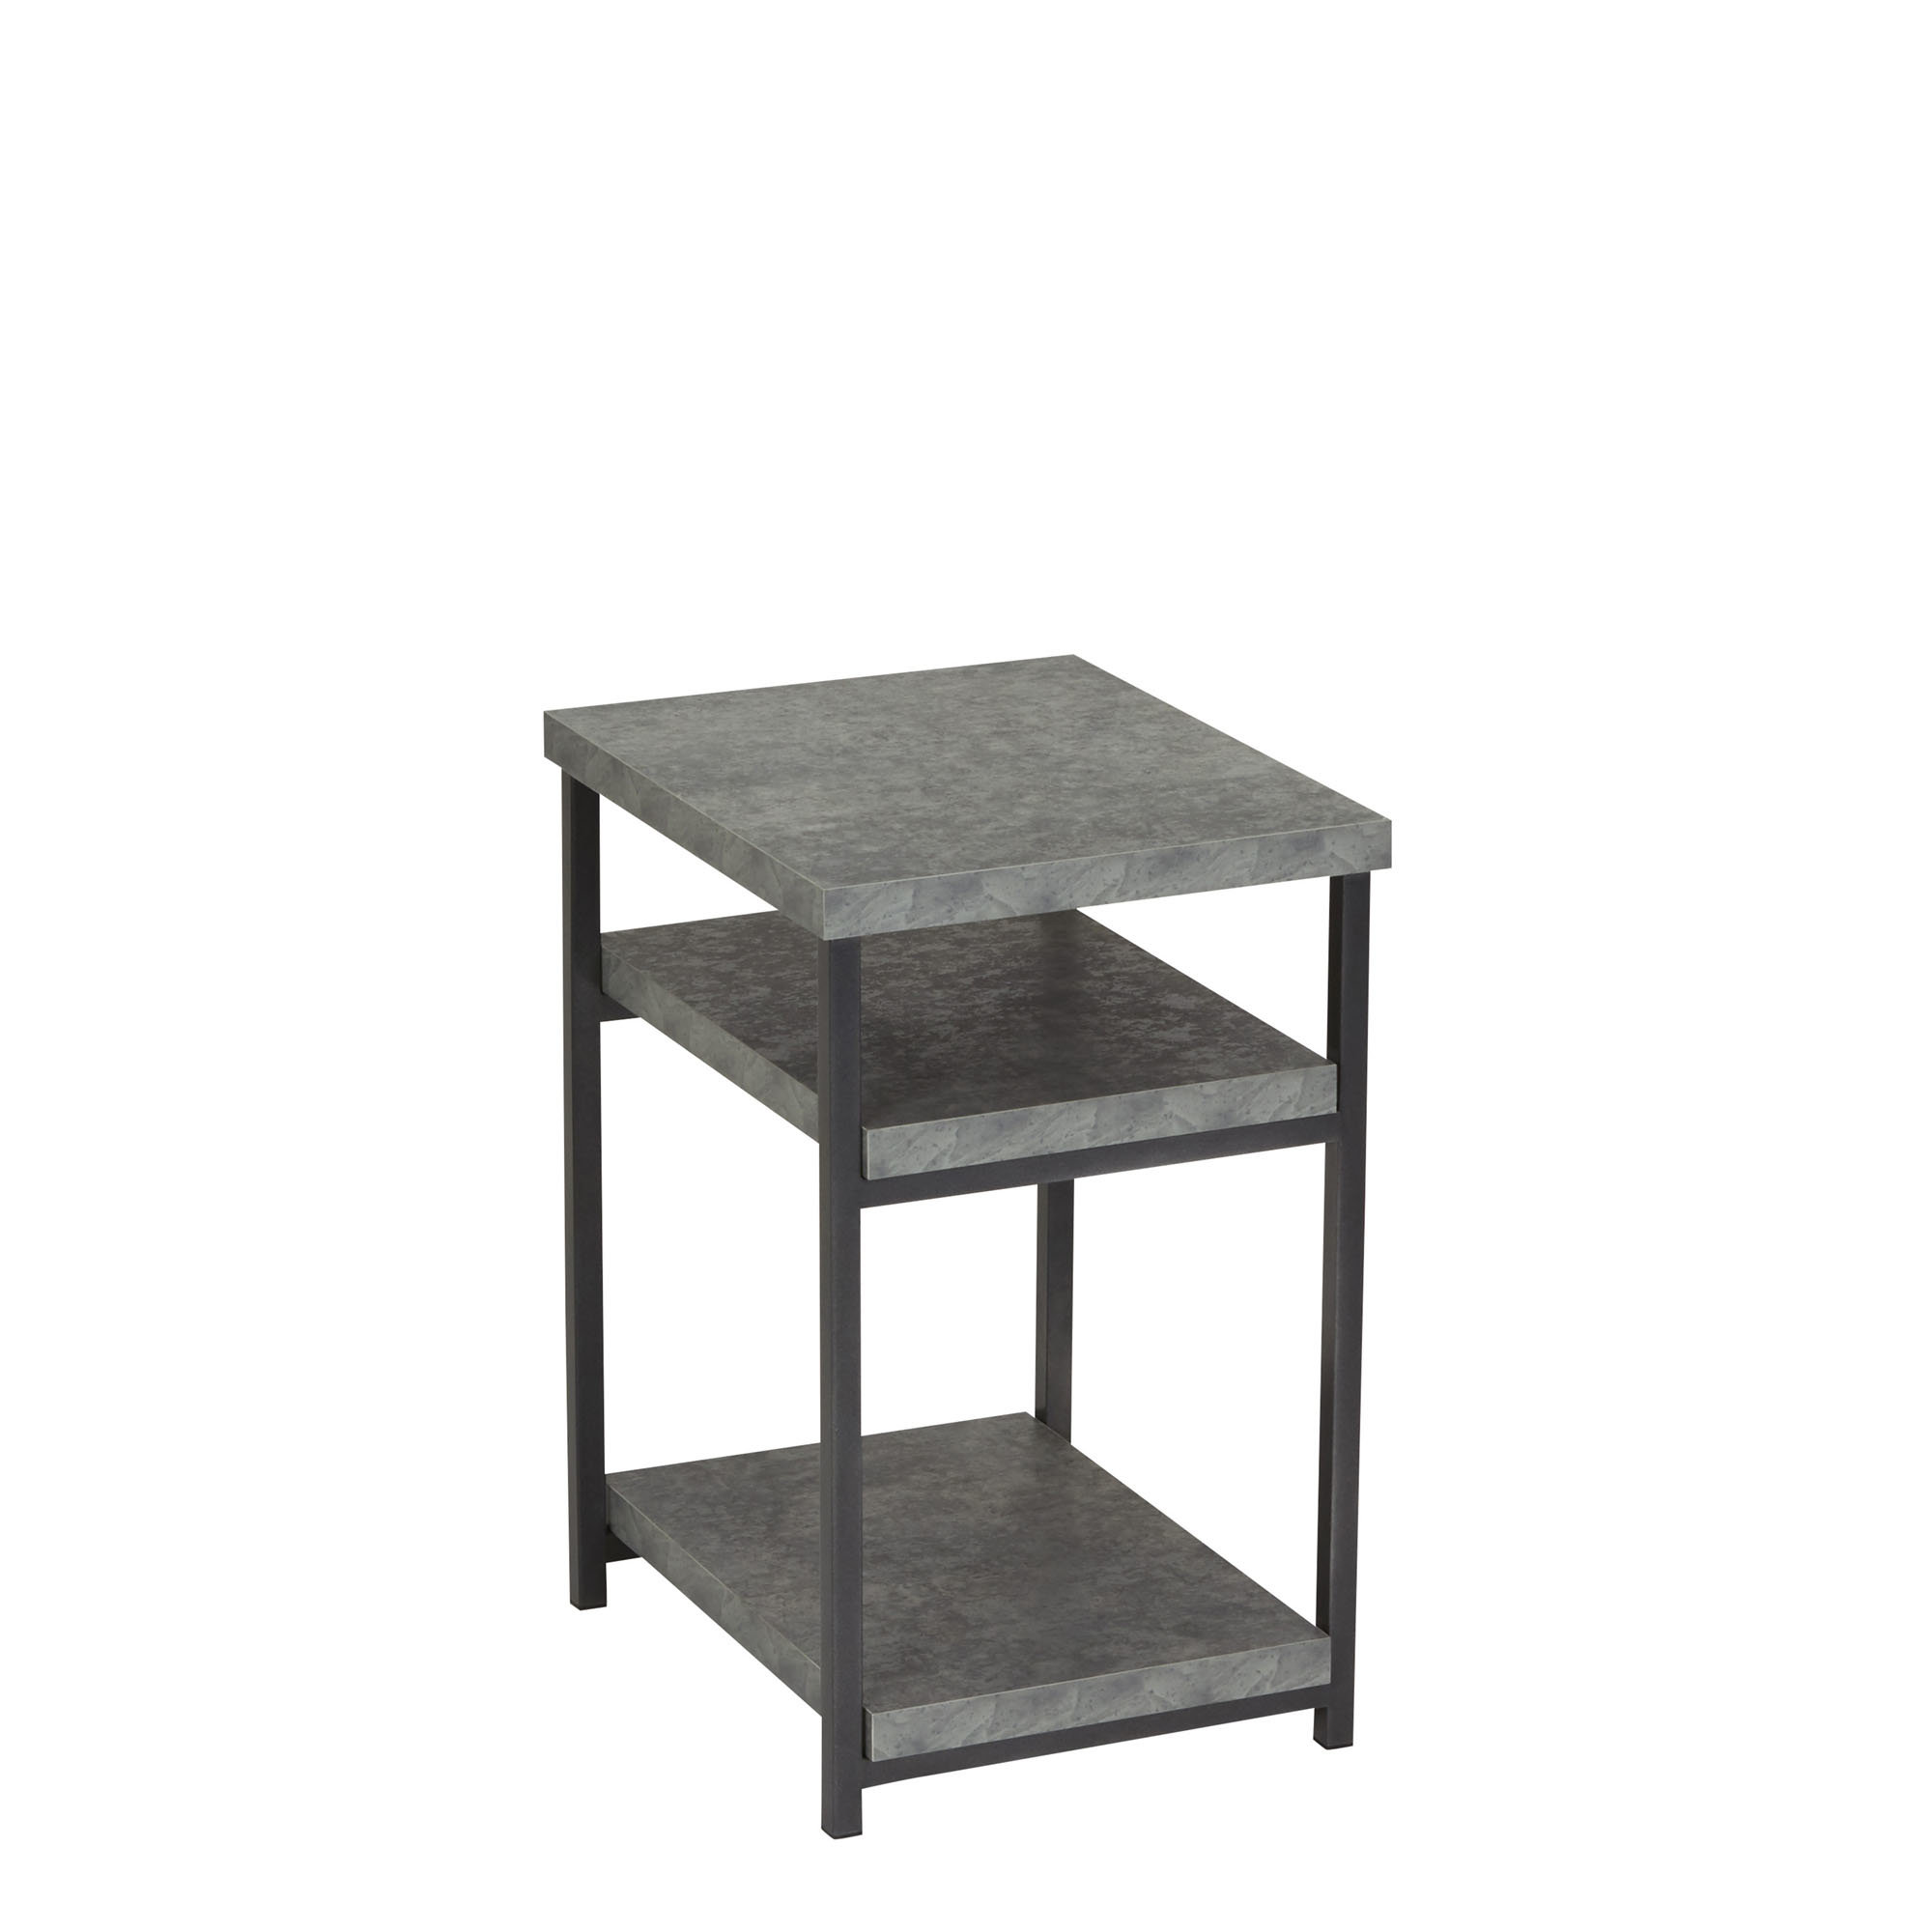 small low side table vlad slate faux concrete end outdoor accent pork pie drum throne round kitchen tablecloths colorful coffee tables target waldo ikea storage bins lounge room